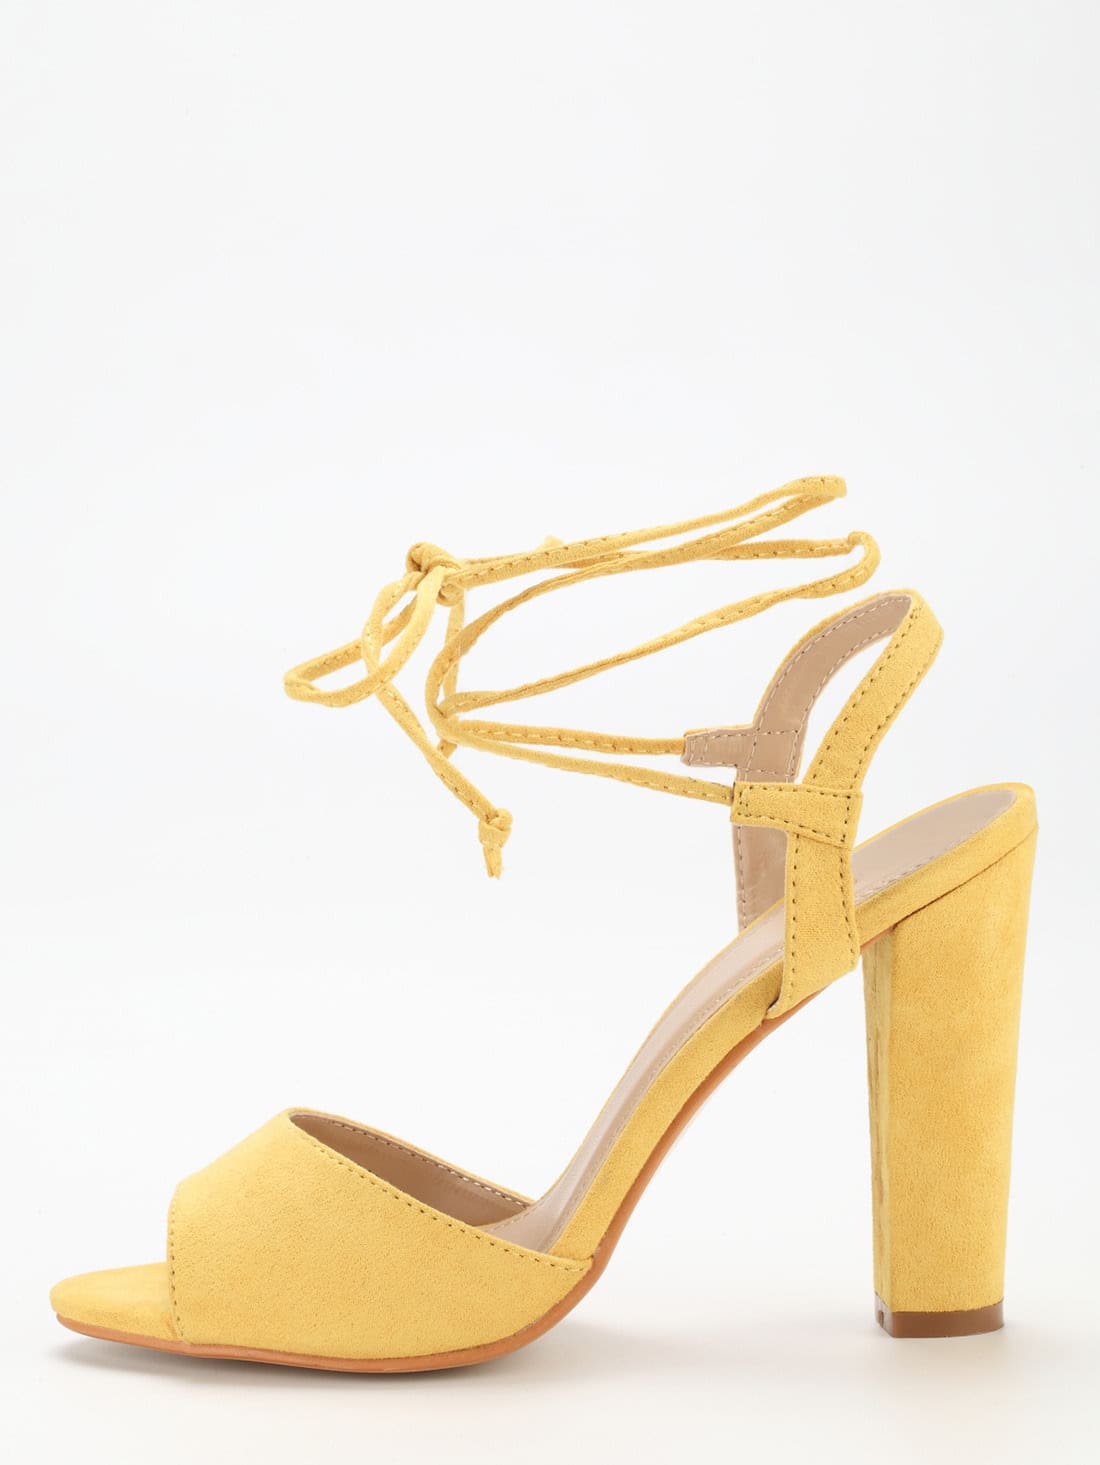 Shoes With Yellow Block Heel